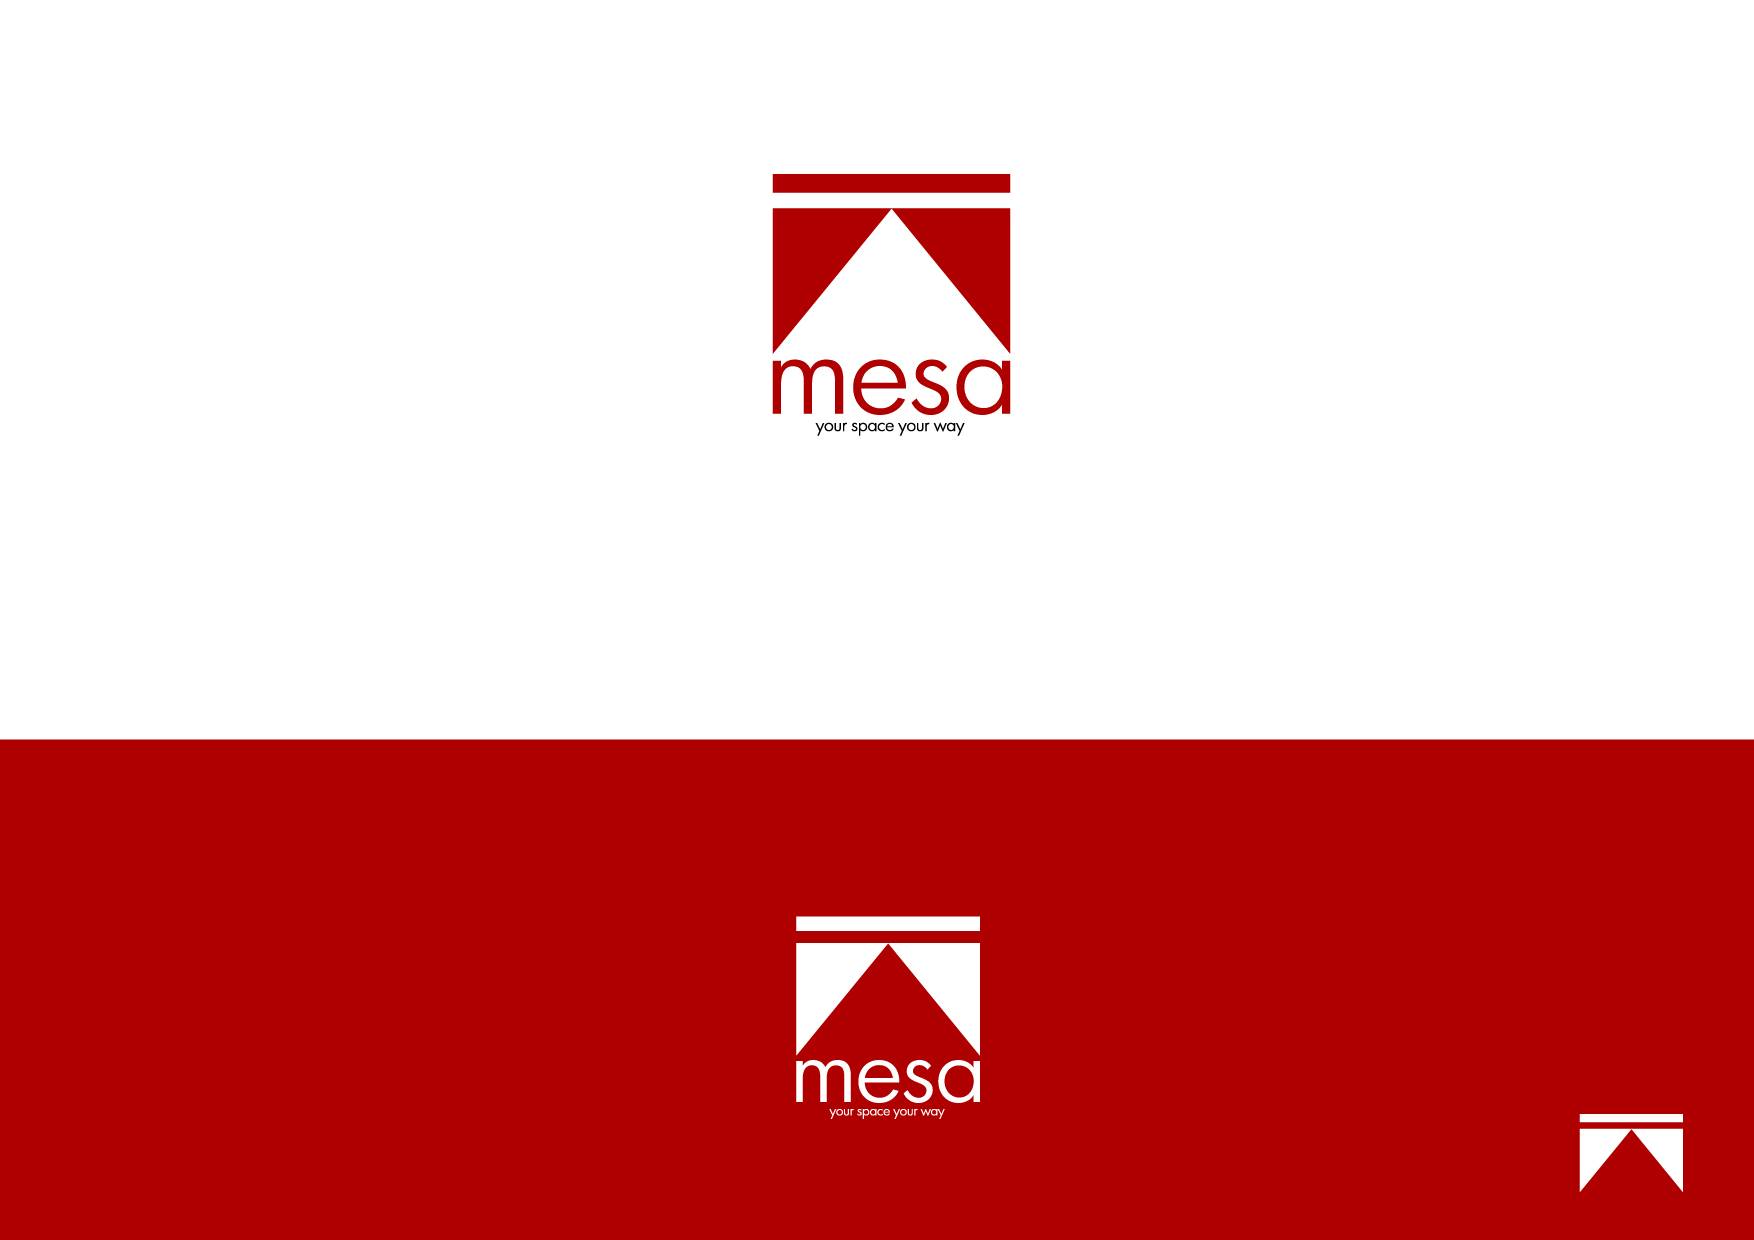 Logo Design by Osi Indra - Entry No. 192 in the Logo Design Contest Logo Design for Mesa.